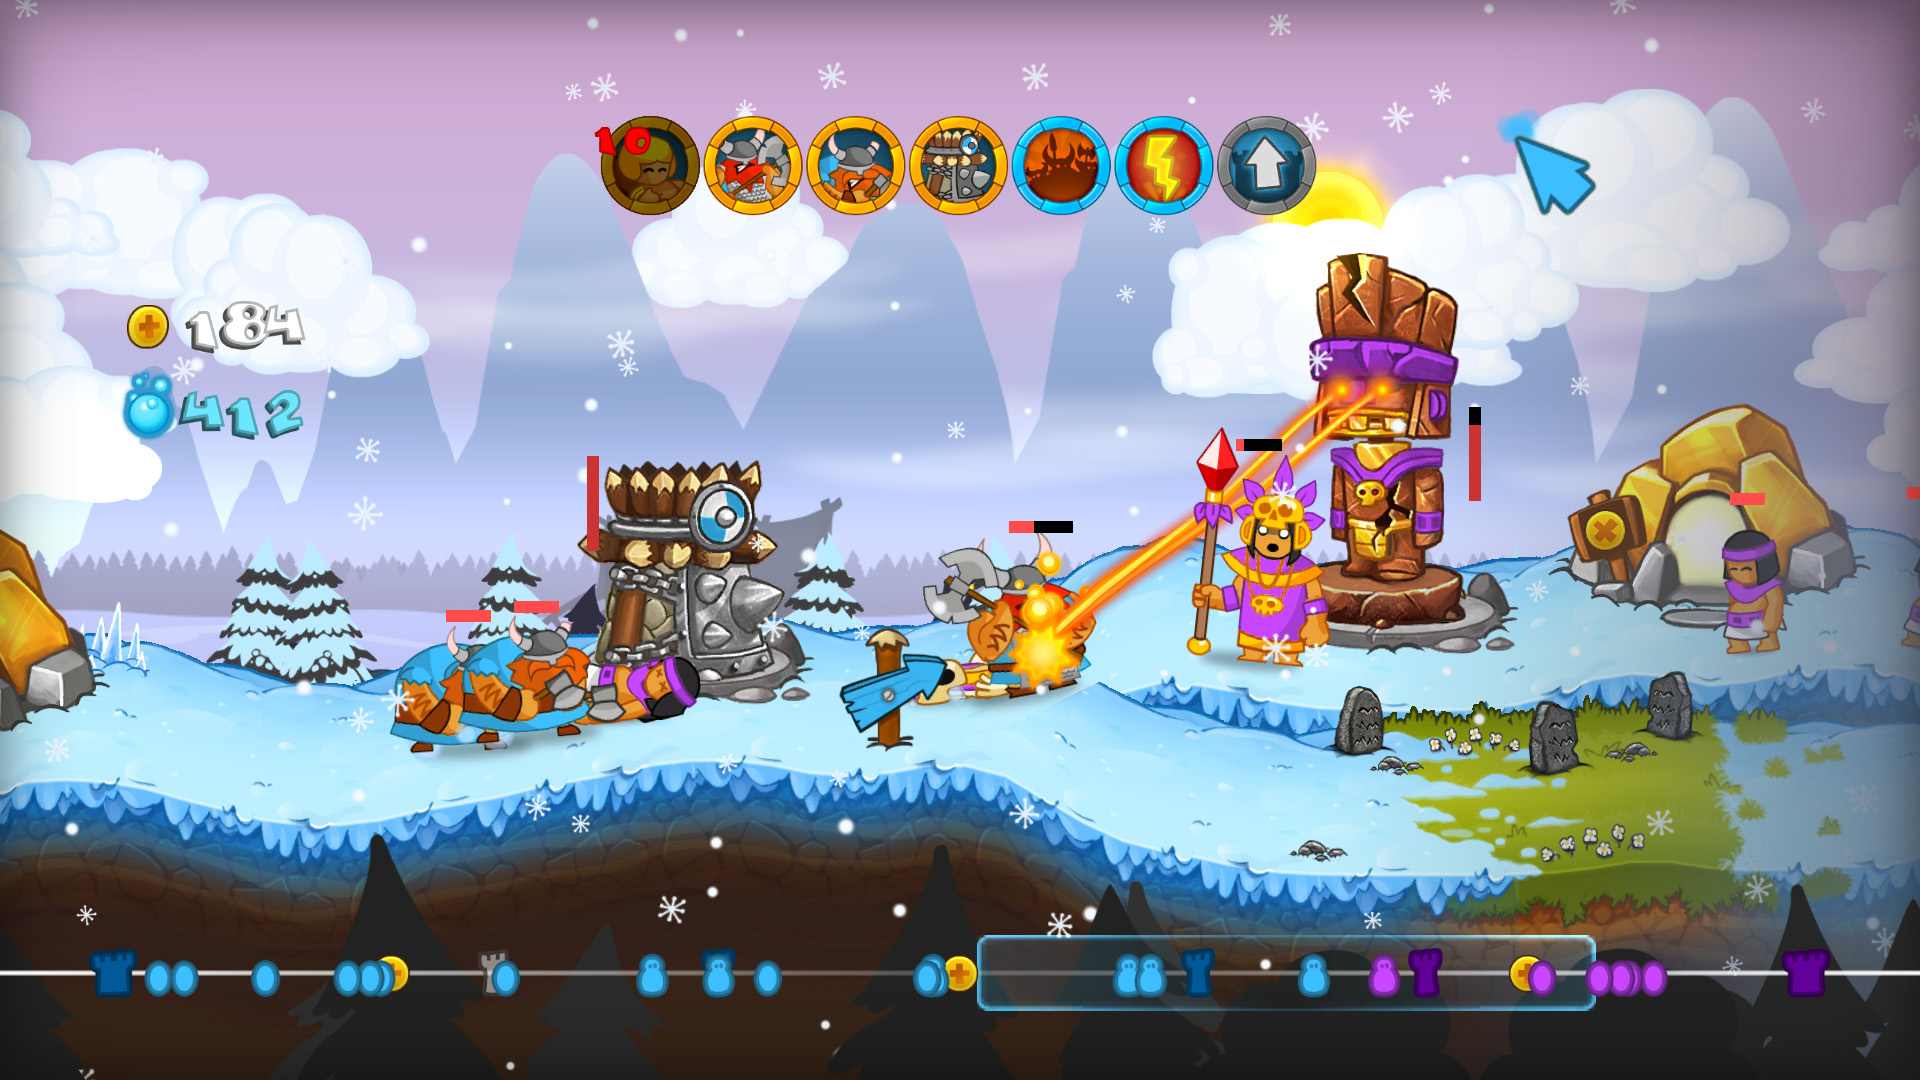 swords & soldiers - the crazy 2d sidescrolling strategy game for